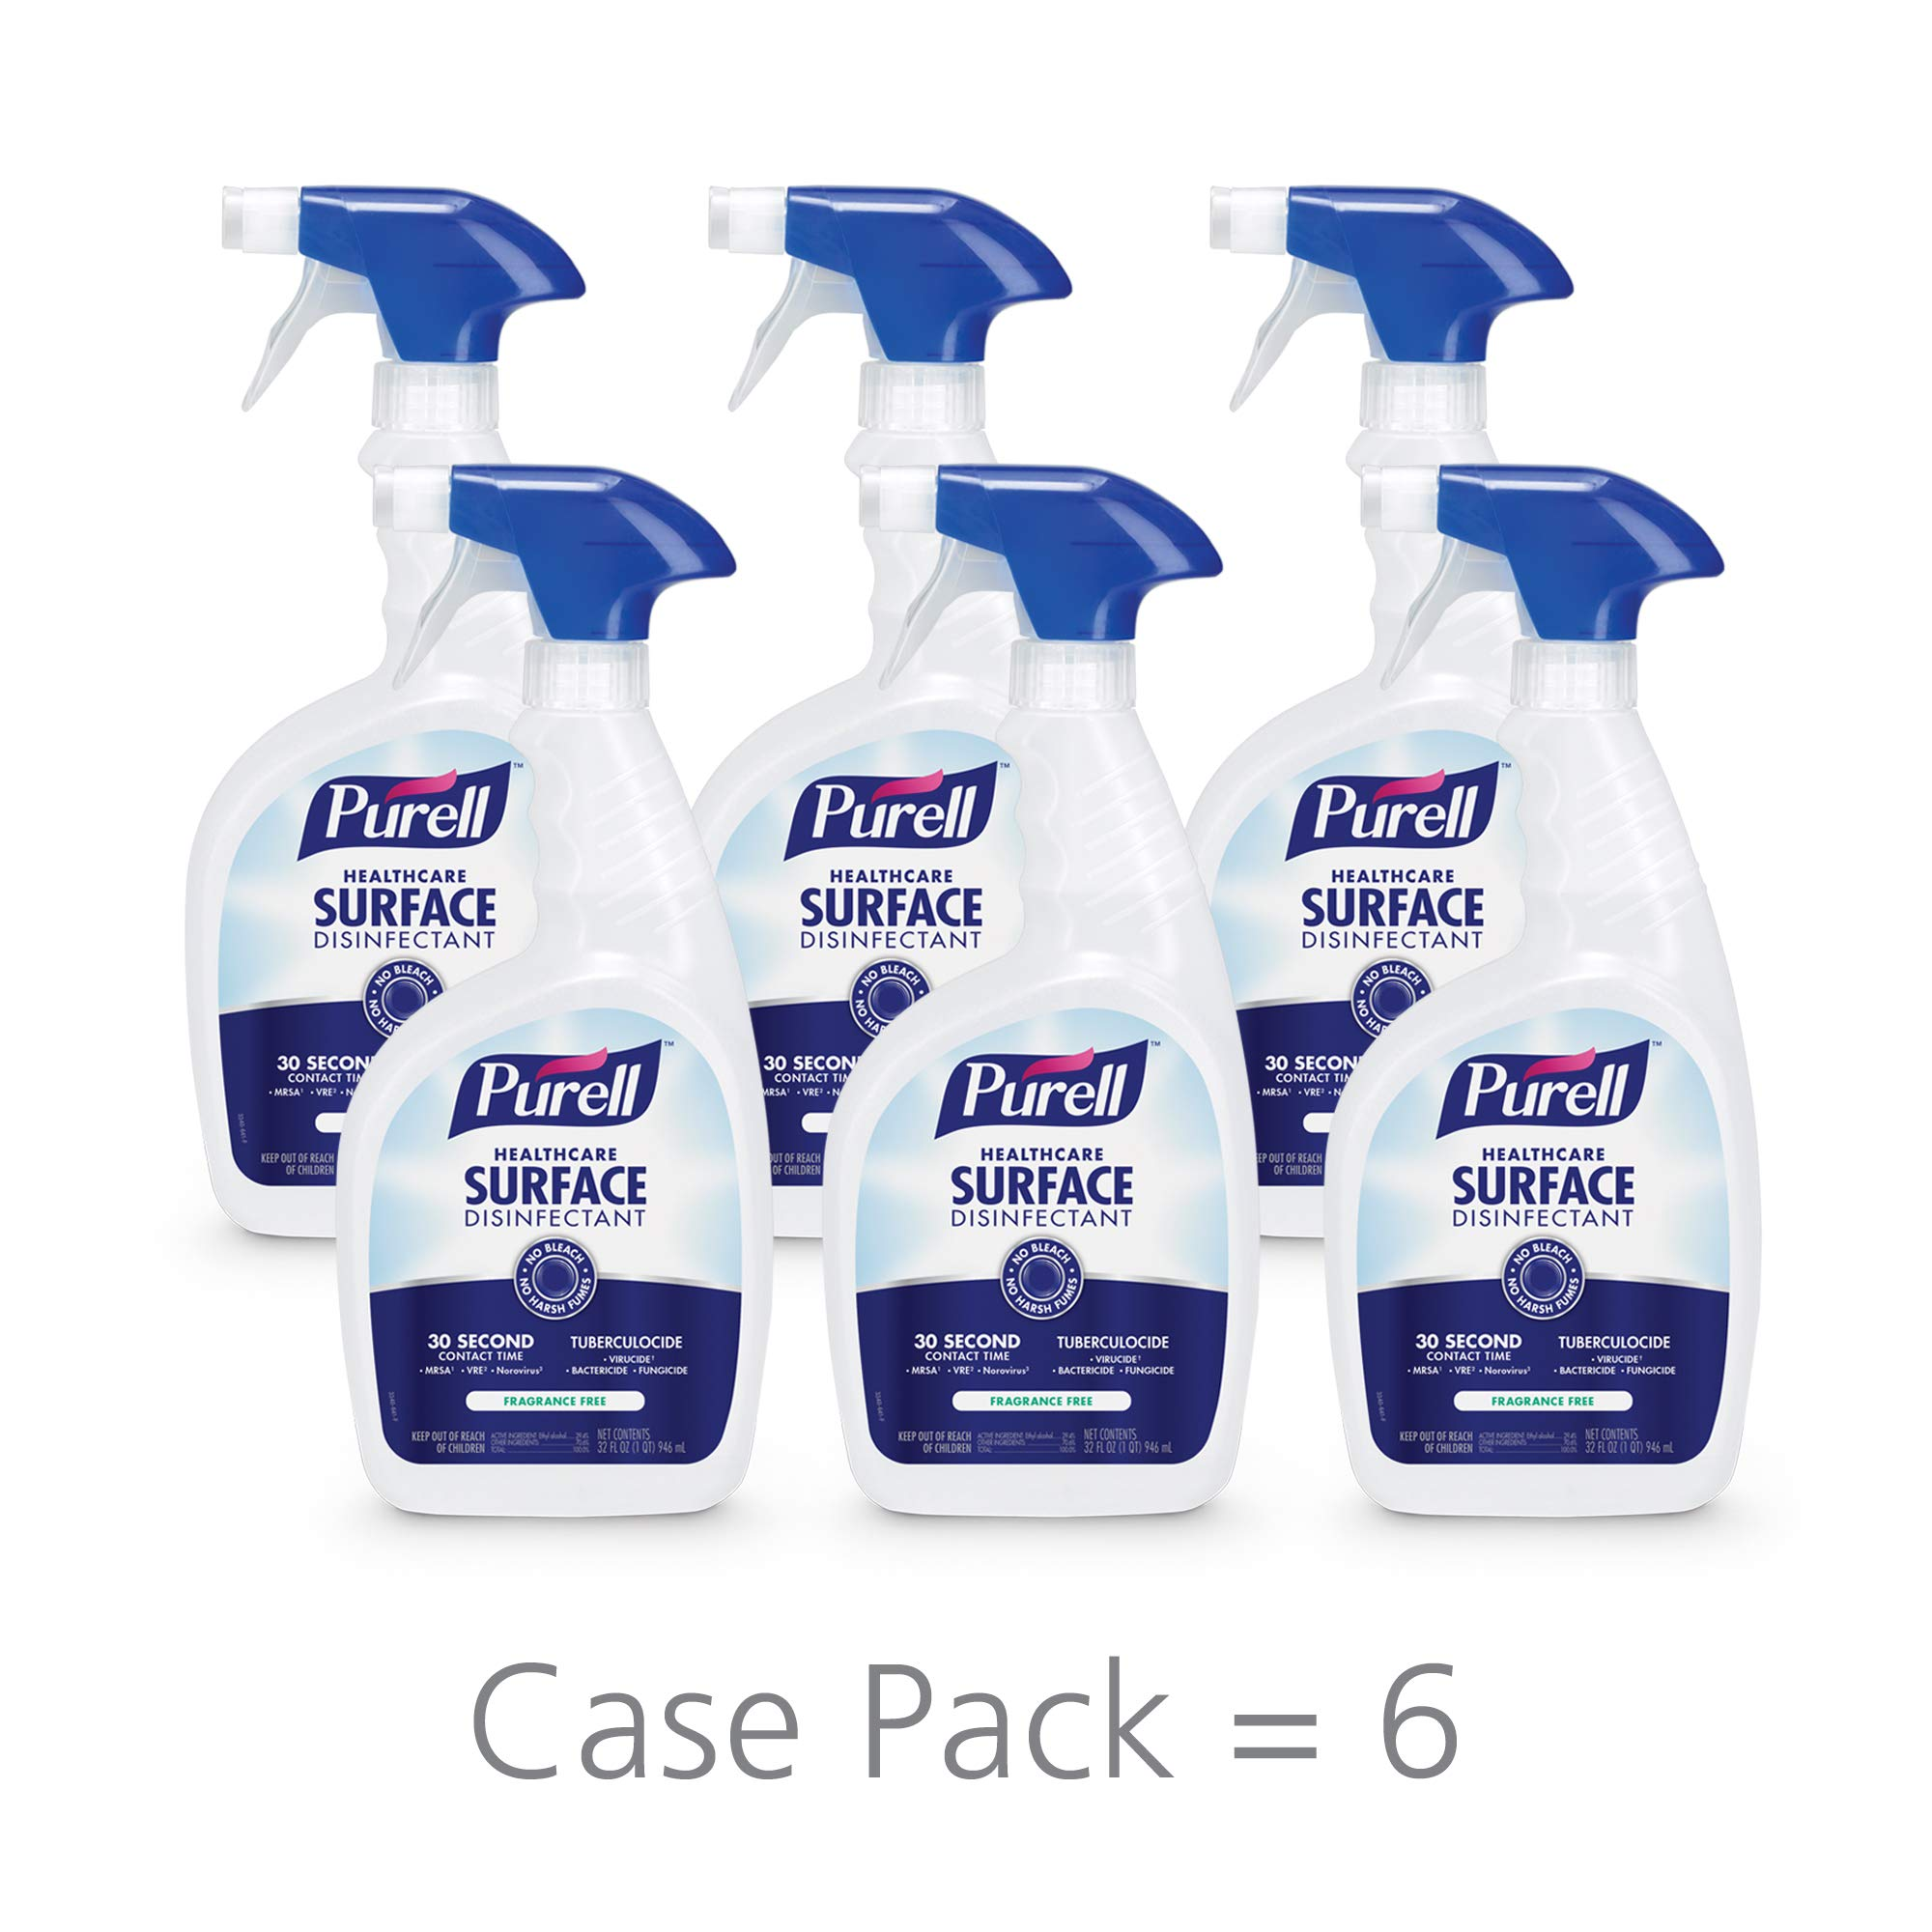 PURELL Healthcare Surface Disinfectant Spray, Fragrance Free, 32 fl oz Capped Bottle with Trigger Sprayer (Pack of 6) - 3340-06 by Purell